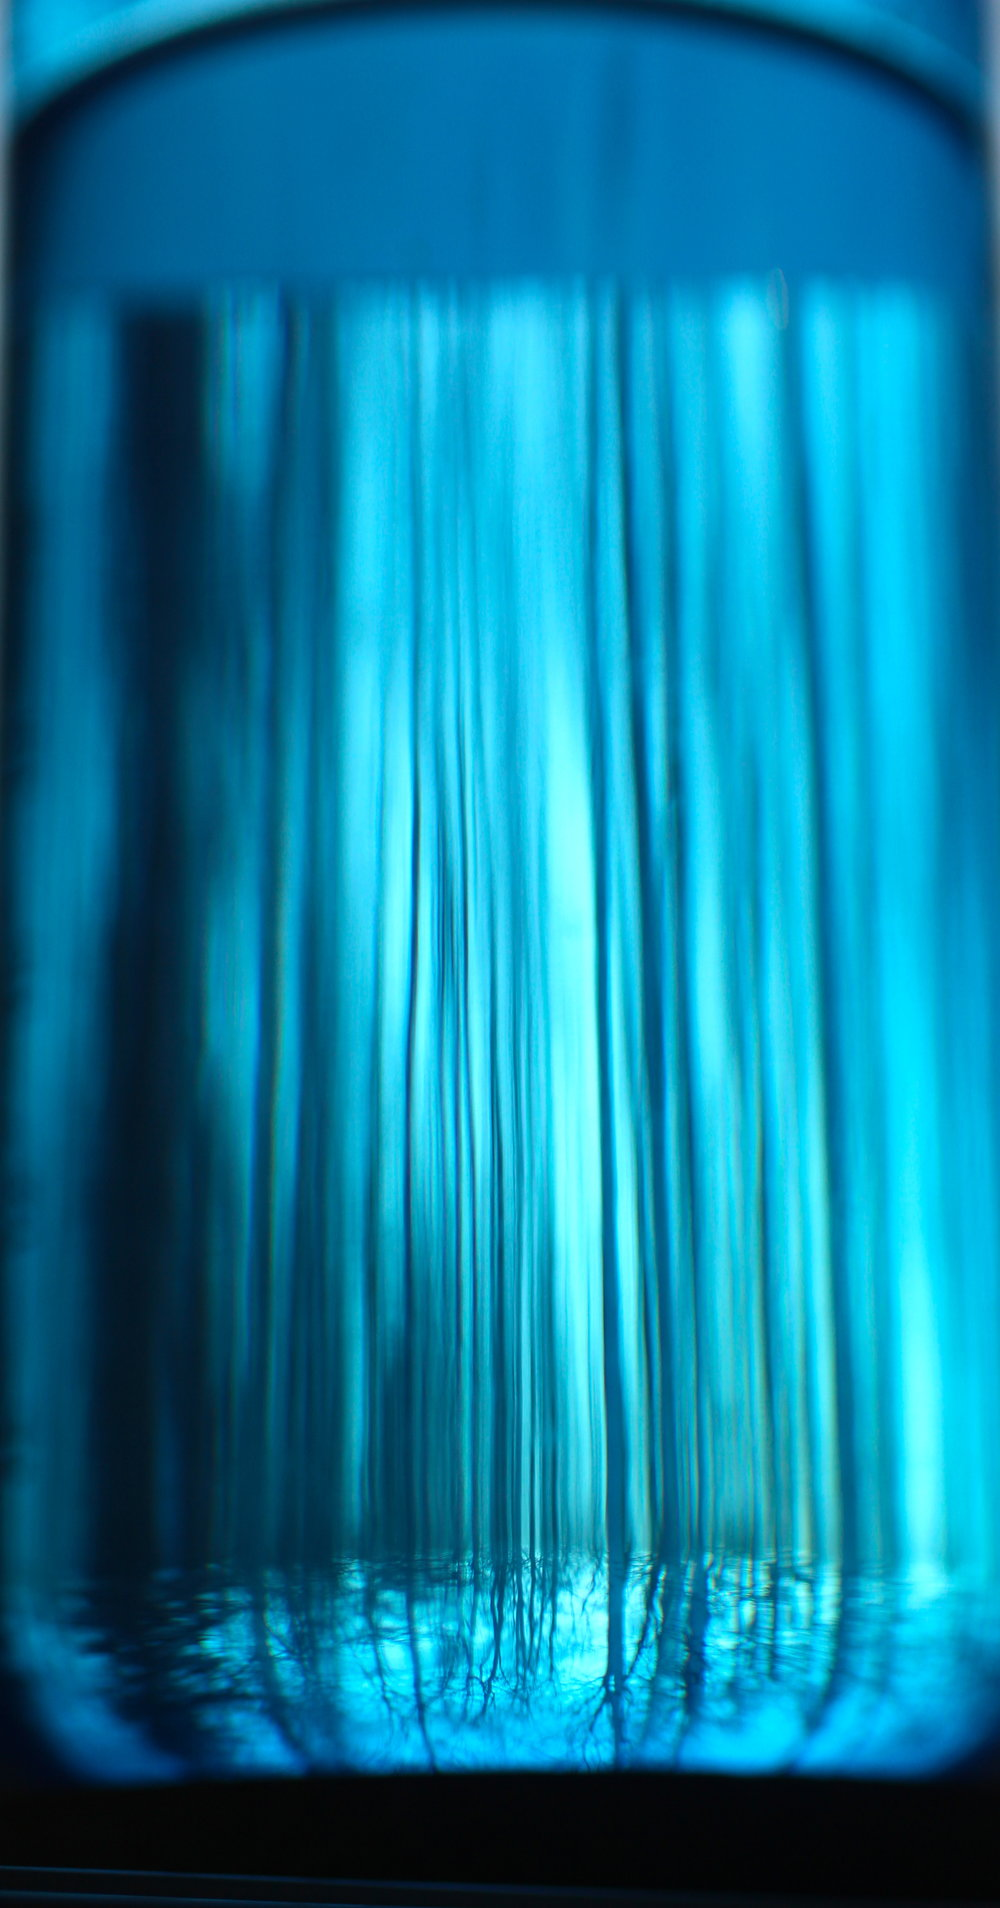 Aqua Forest - Alaskan Forest through a Water Bottle